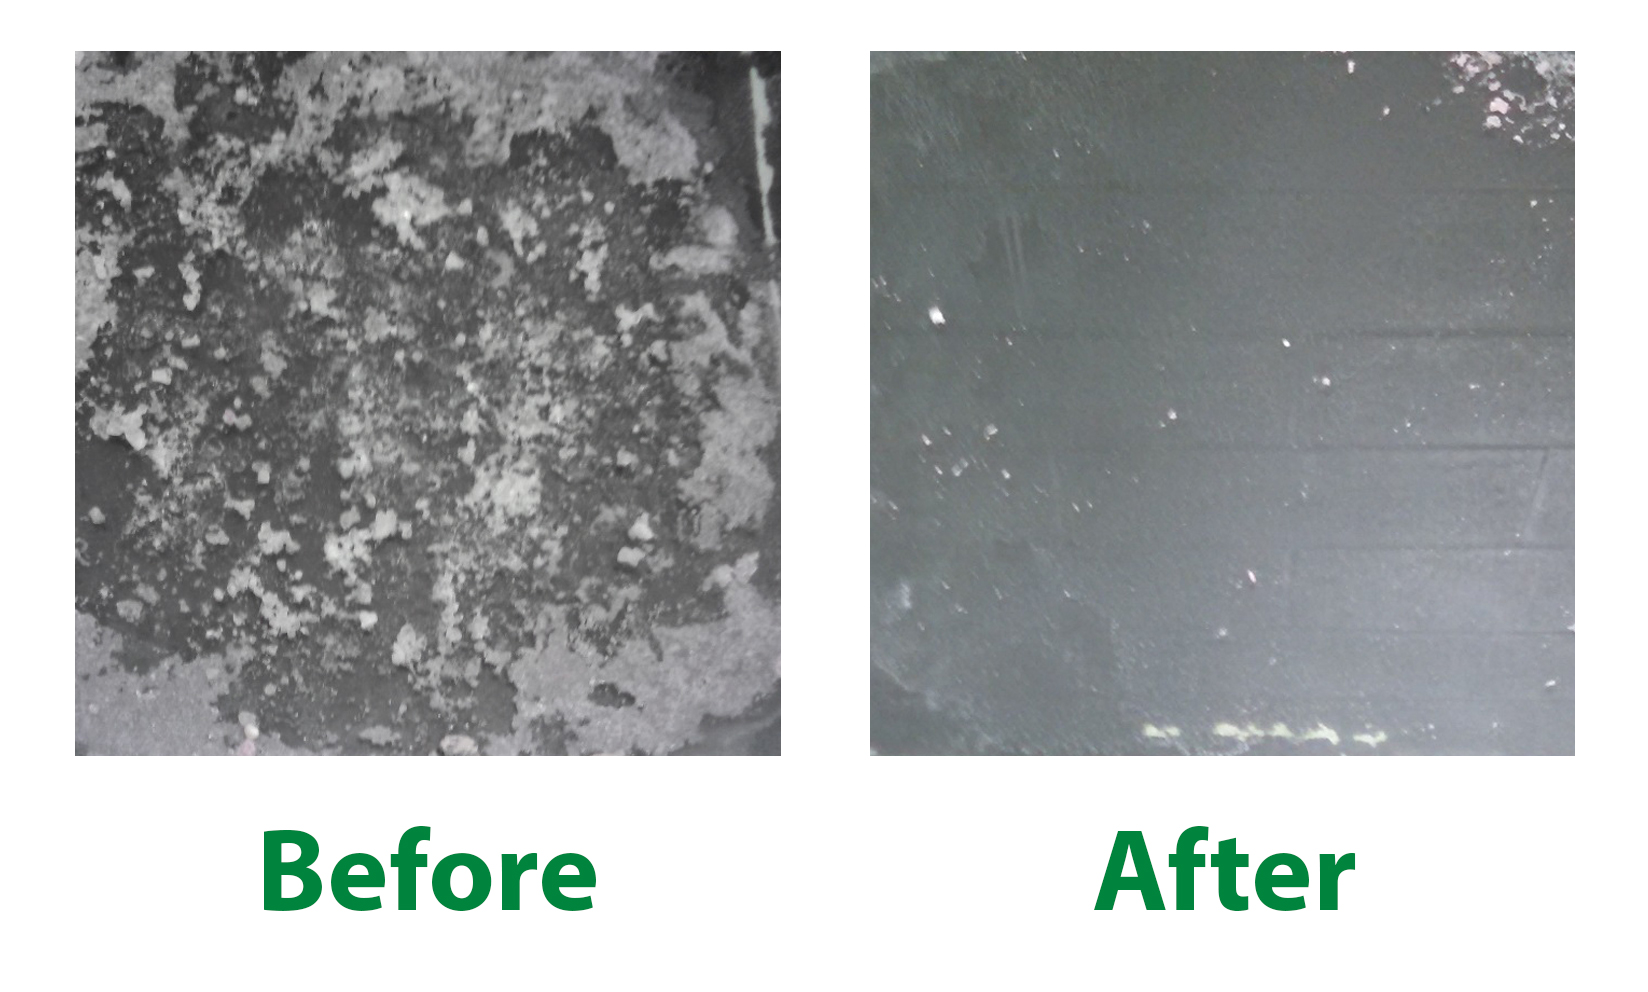 Before and After using EnvirOx Green Certified Neutral Floor Cleaner on Ice Melt Residue